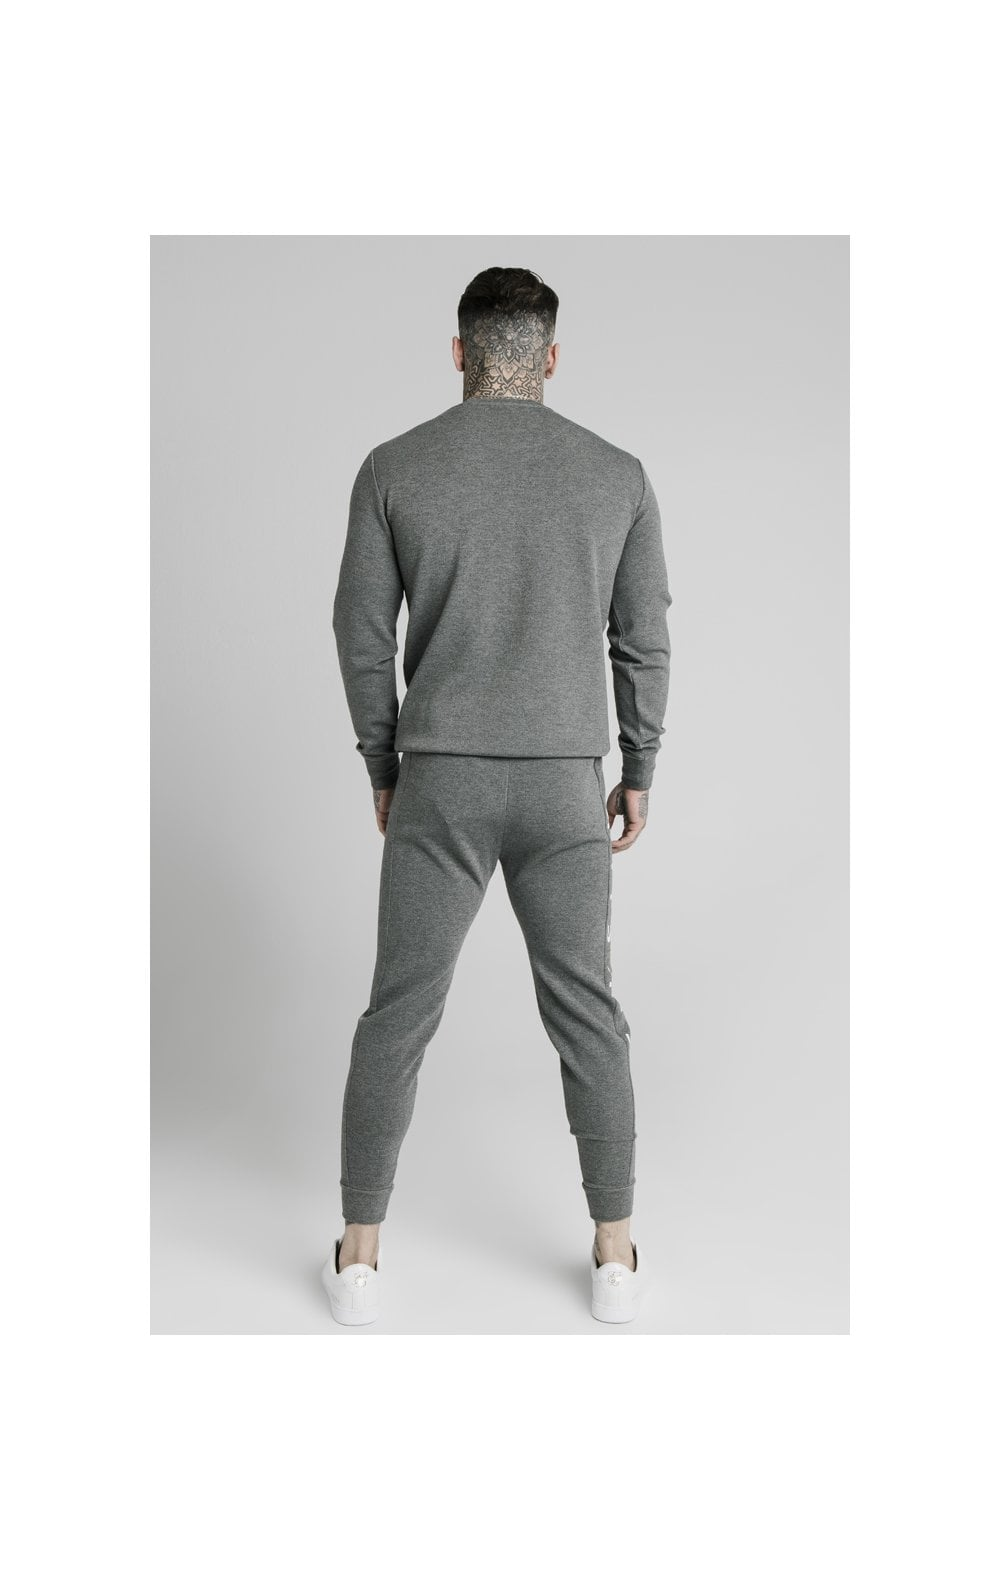 SikSilk Signature Sweater - Grey (4)